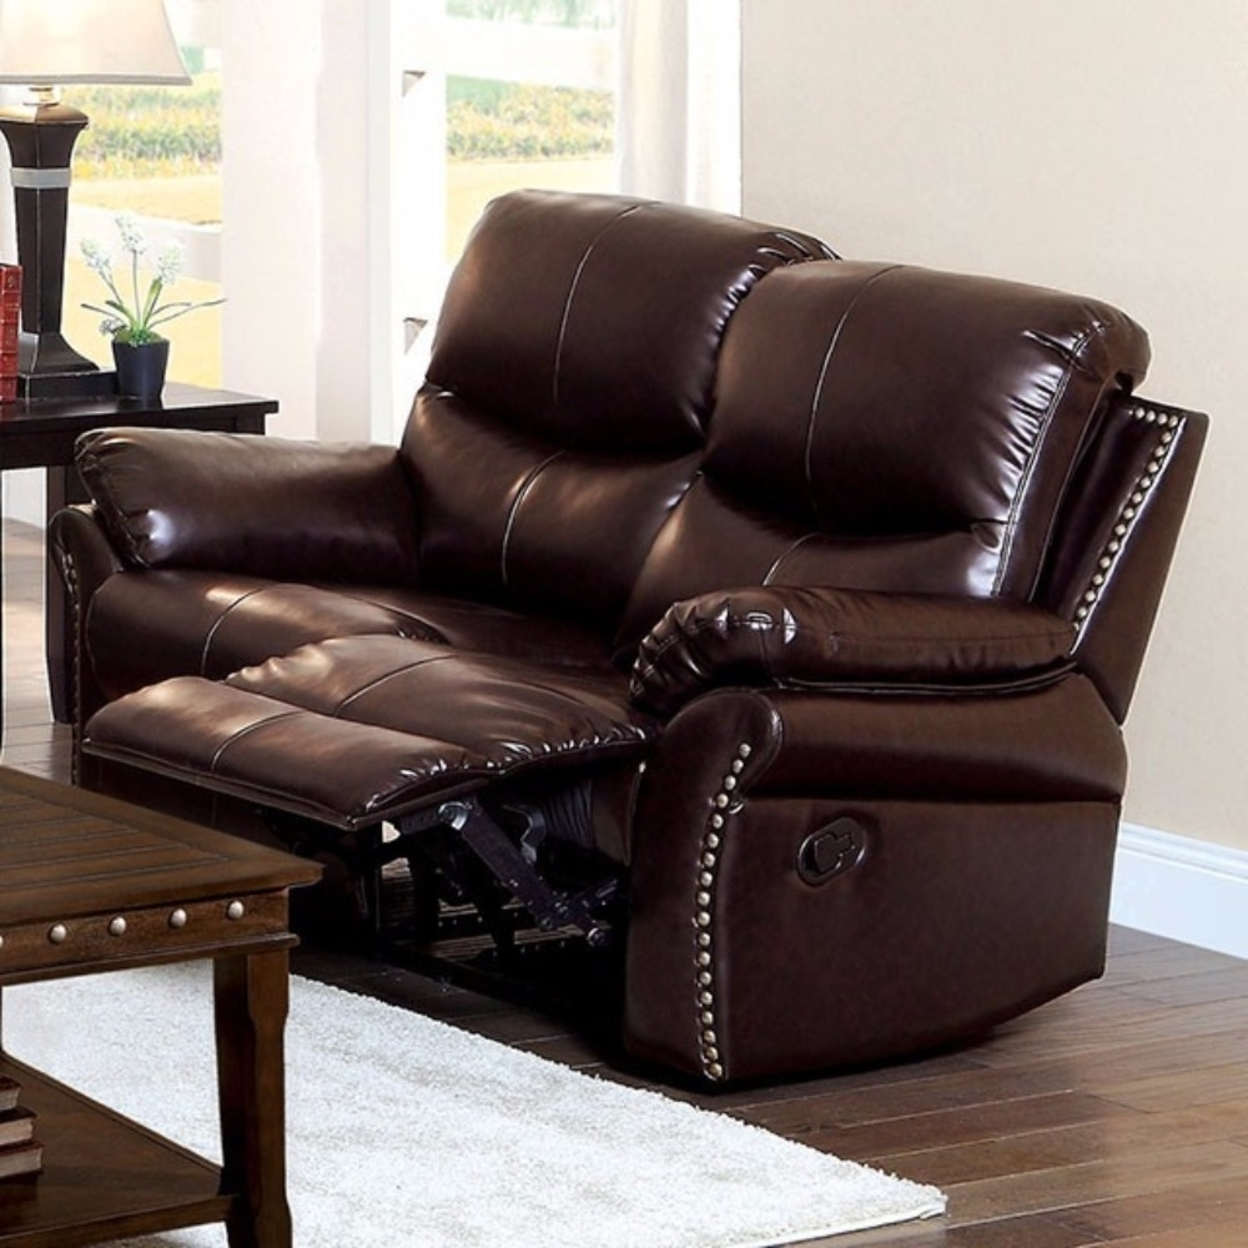 Bonded Leather Love Seat with 2 Recliners, Brown 5a7ad203e22461453f640b6b